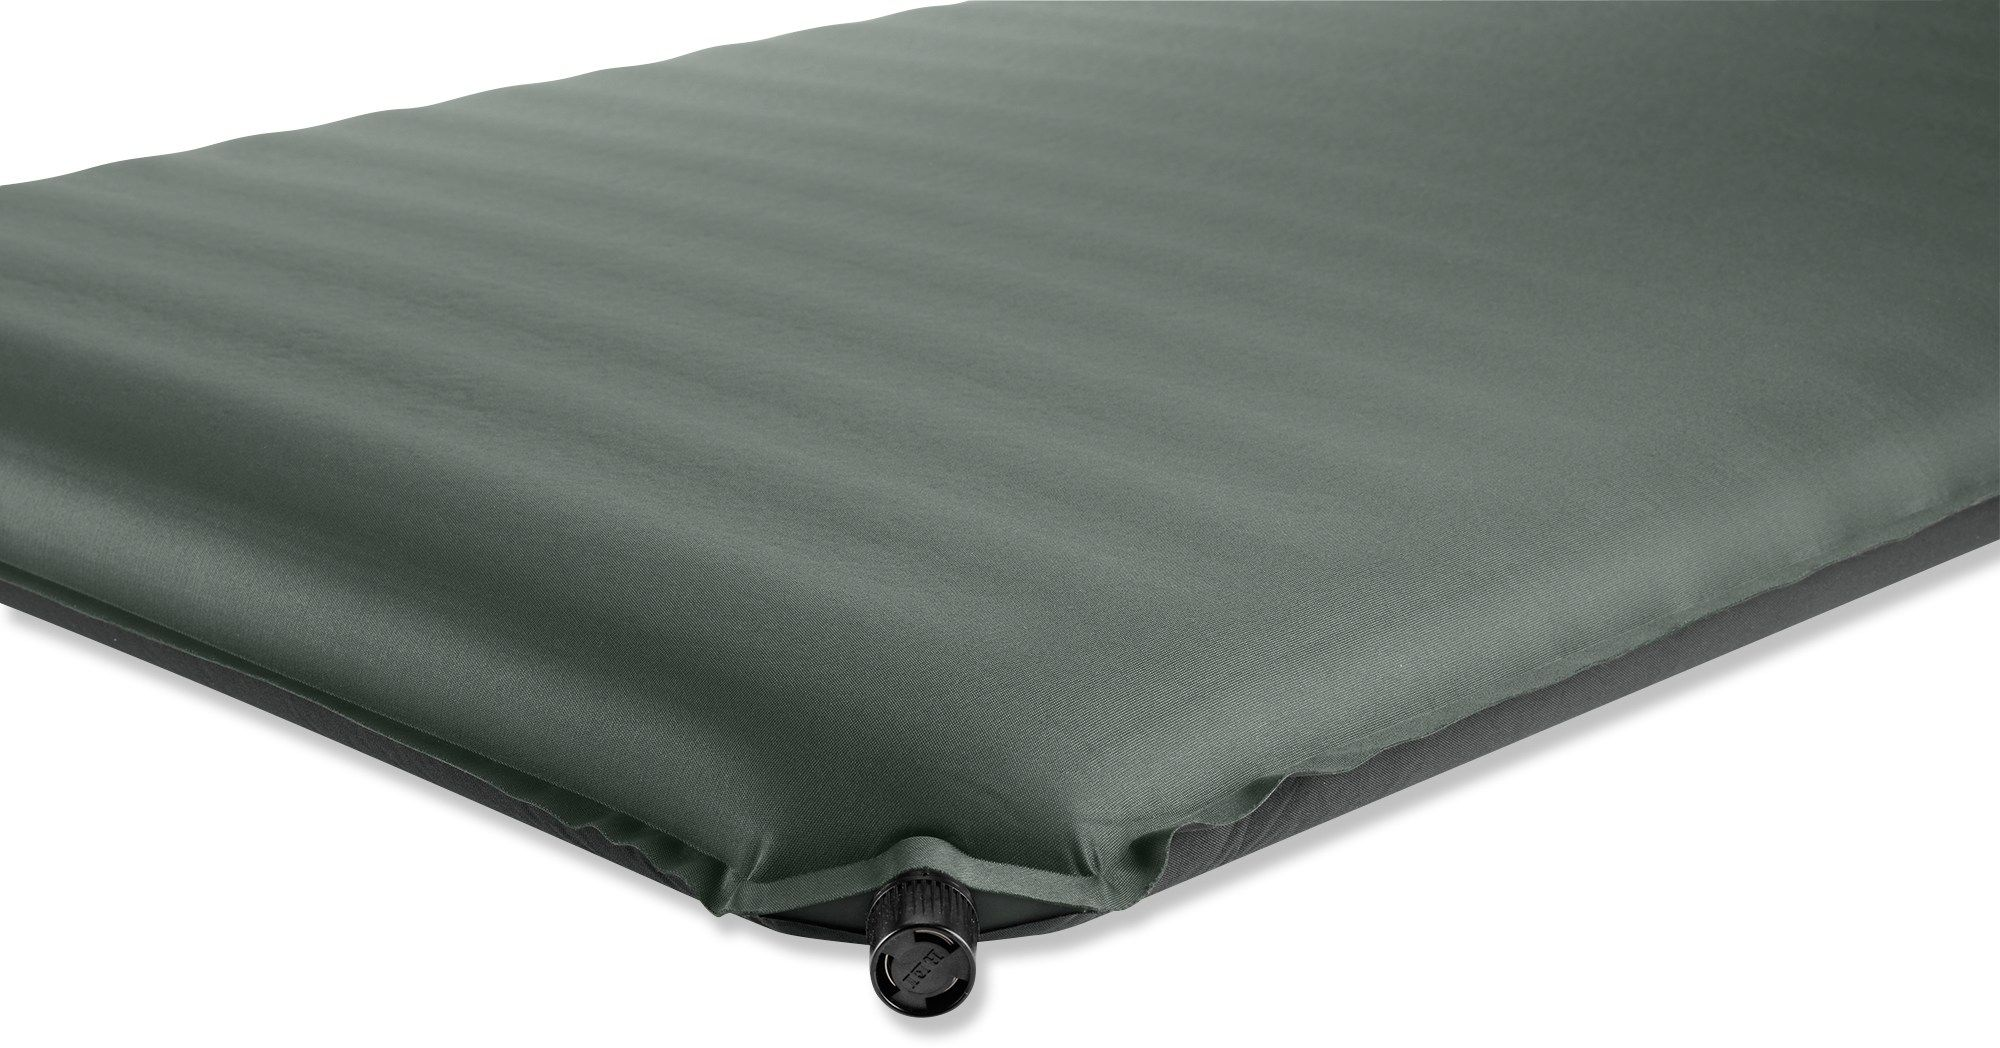 rei camp bed 3.5 self-inflating pad | camino | pinterest | camping